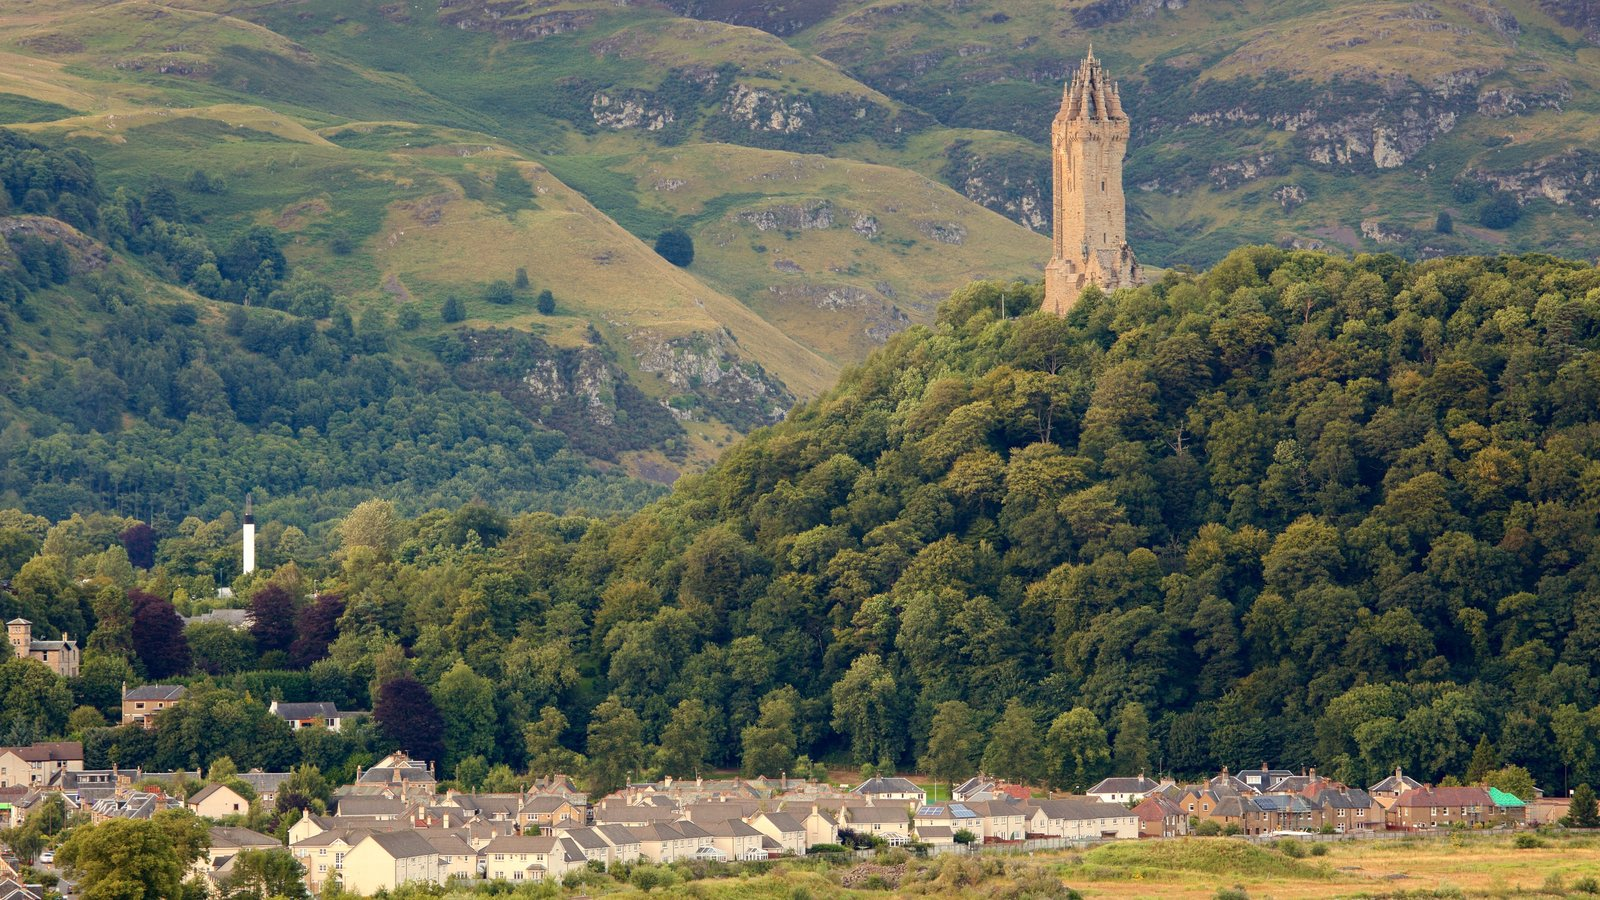 National Wallace Monument featuring a small town or village, a monument and forests